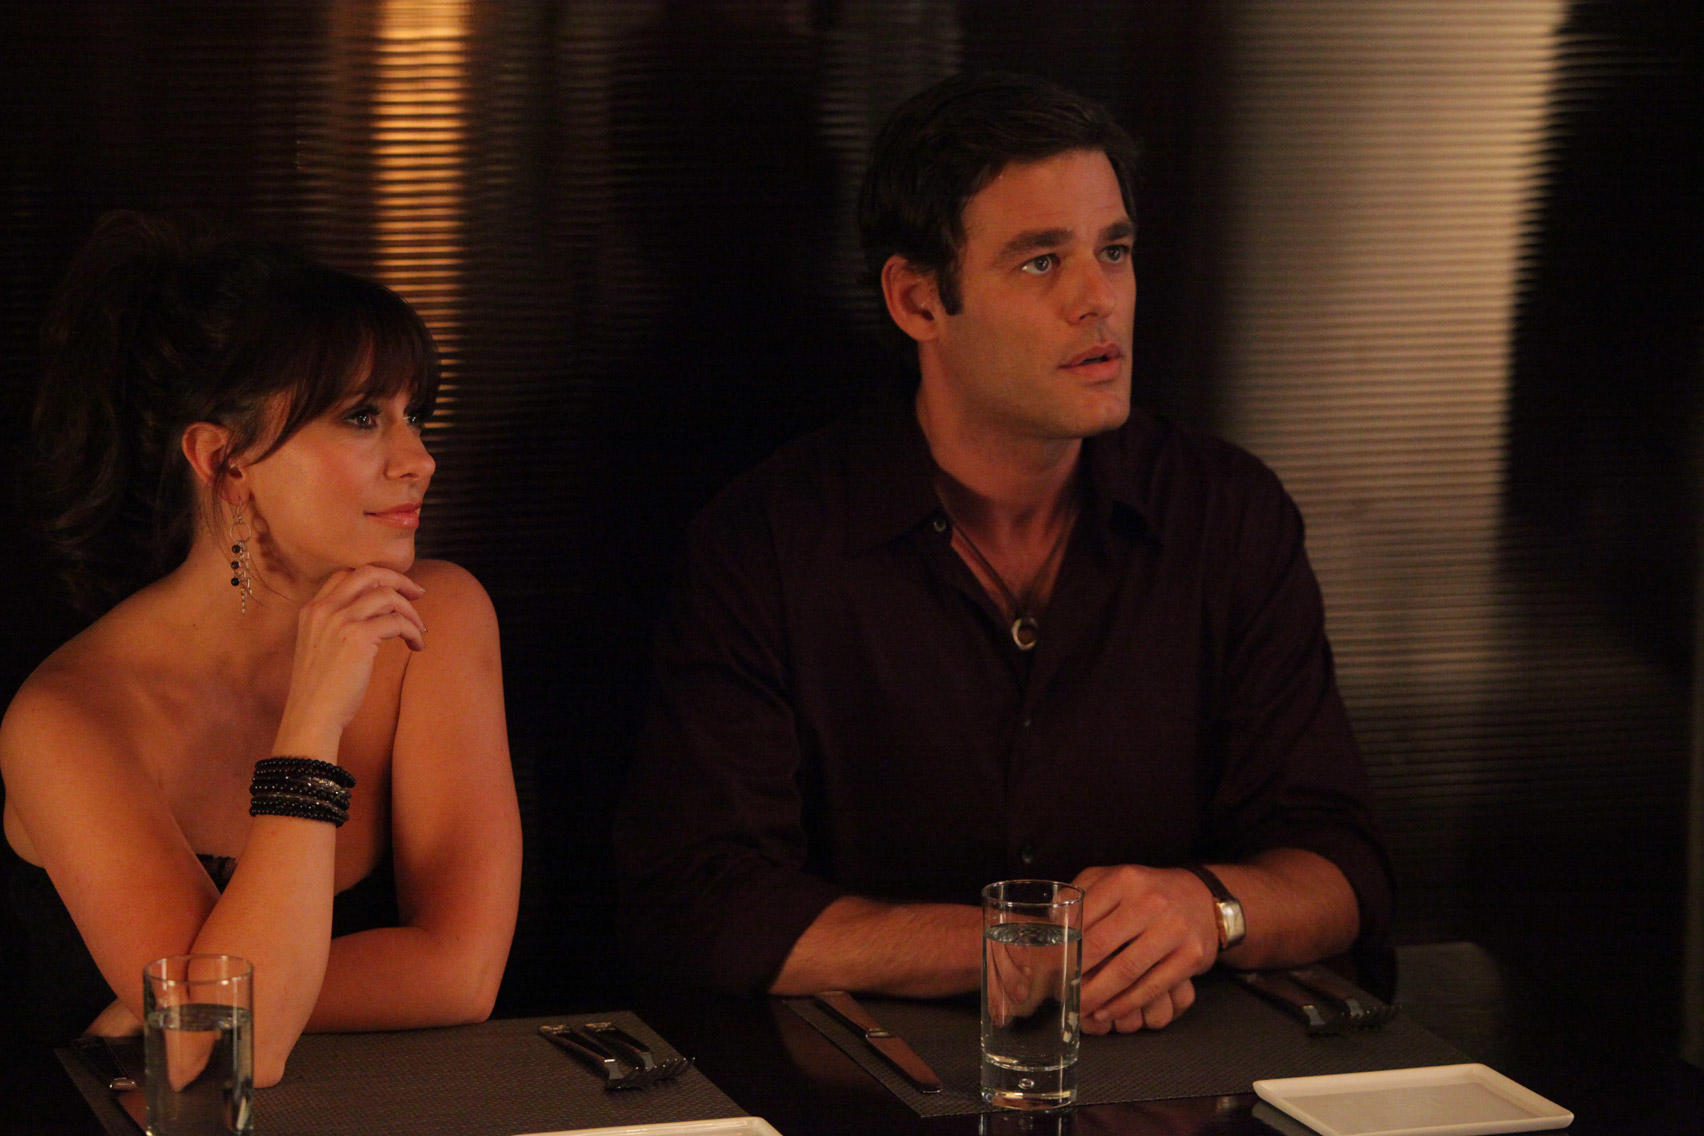 Jennifer Love Hewitt as Alison Marks and Ivan Sergei as Christian O'Connell in